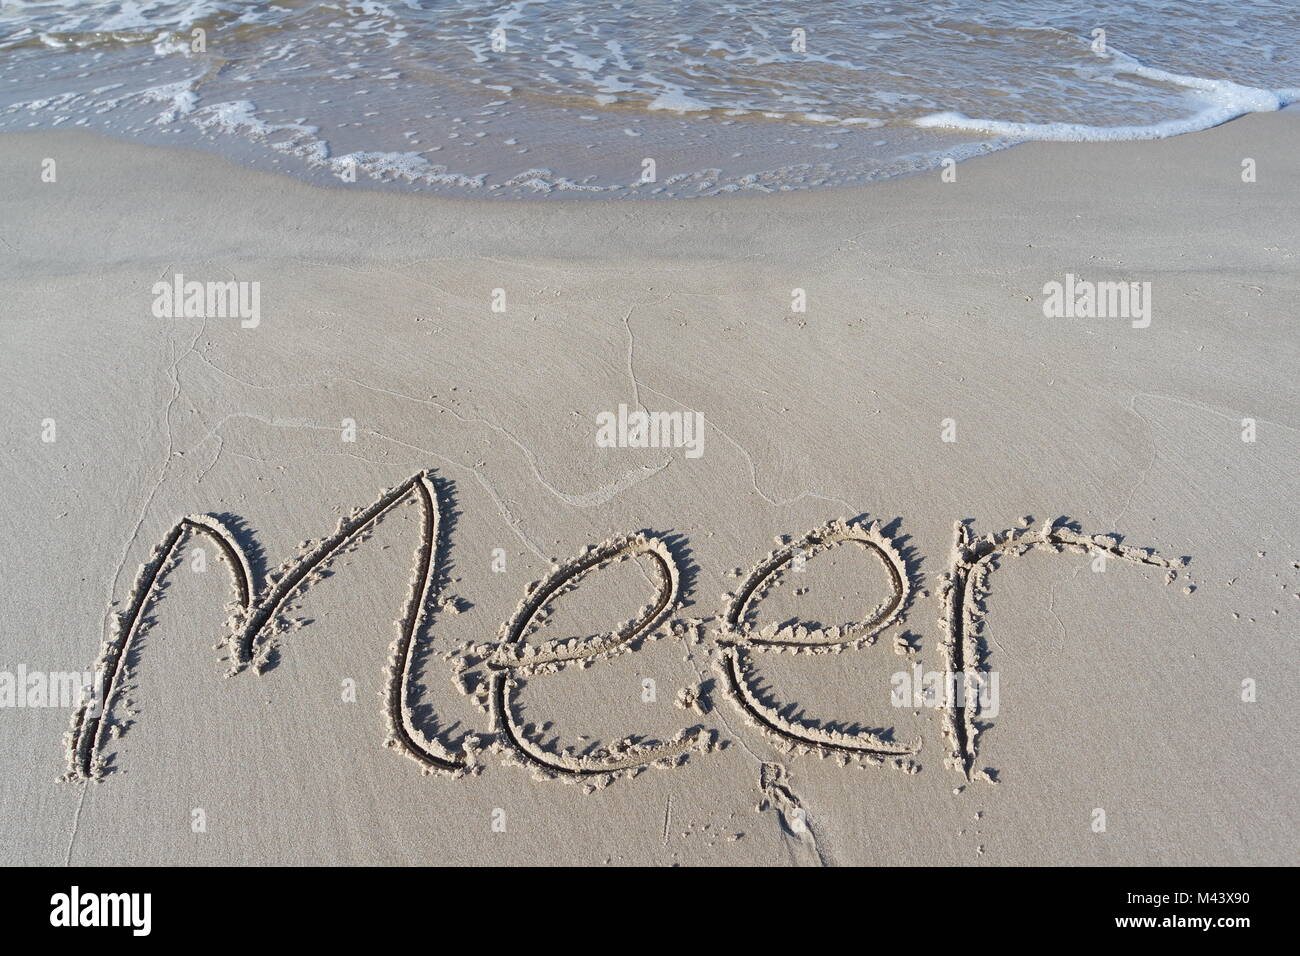 sea written in sand - Stock Image